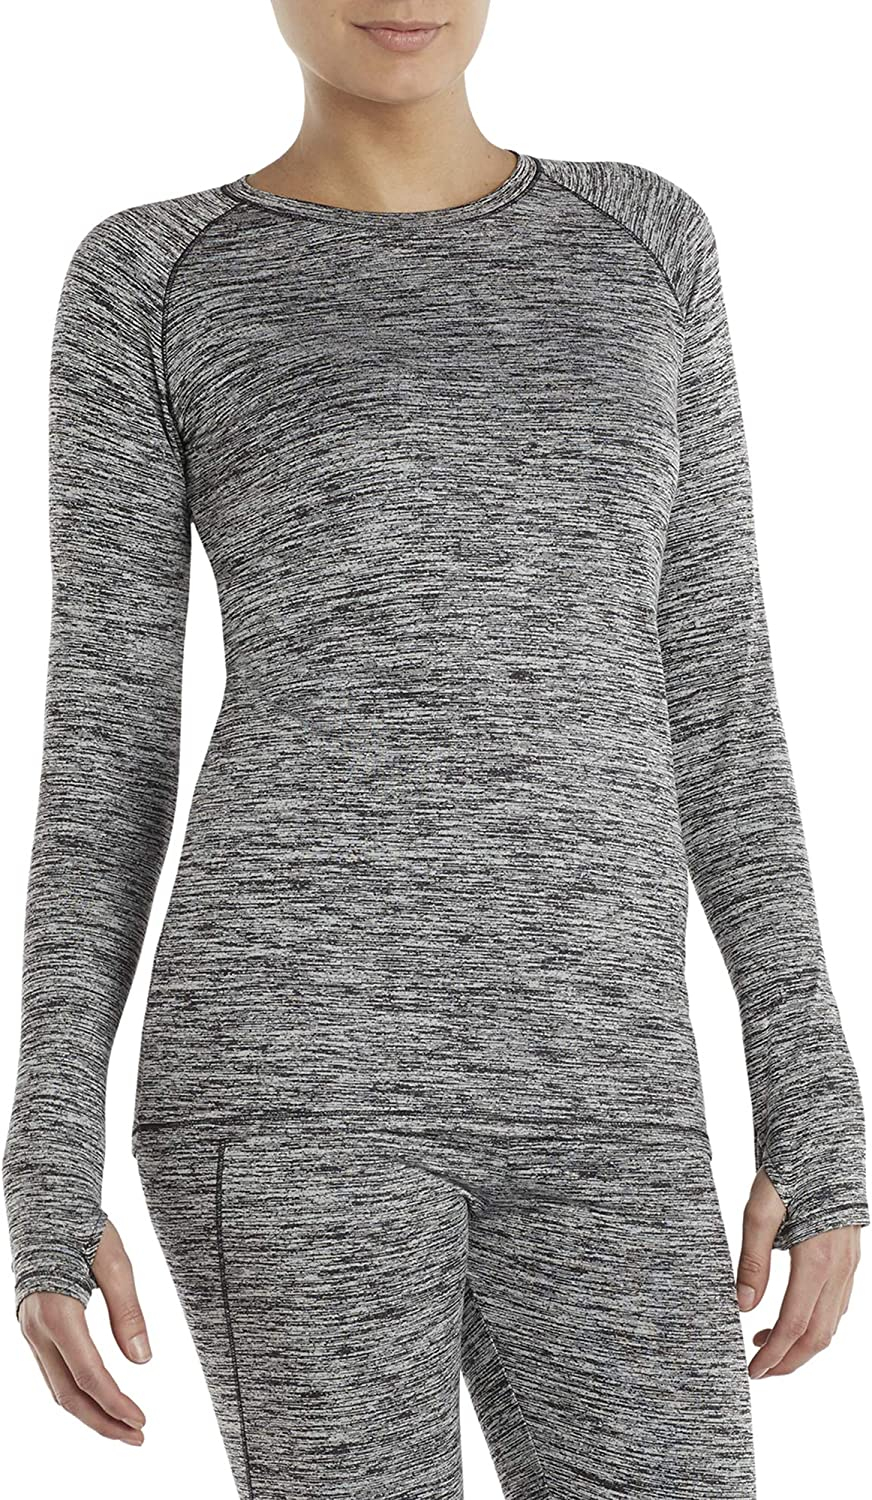 Cuddl Duds Climate Right Plush Warmth Base Layer Soft Long Sleeve Crew with Thumbholes